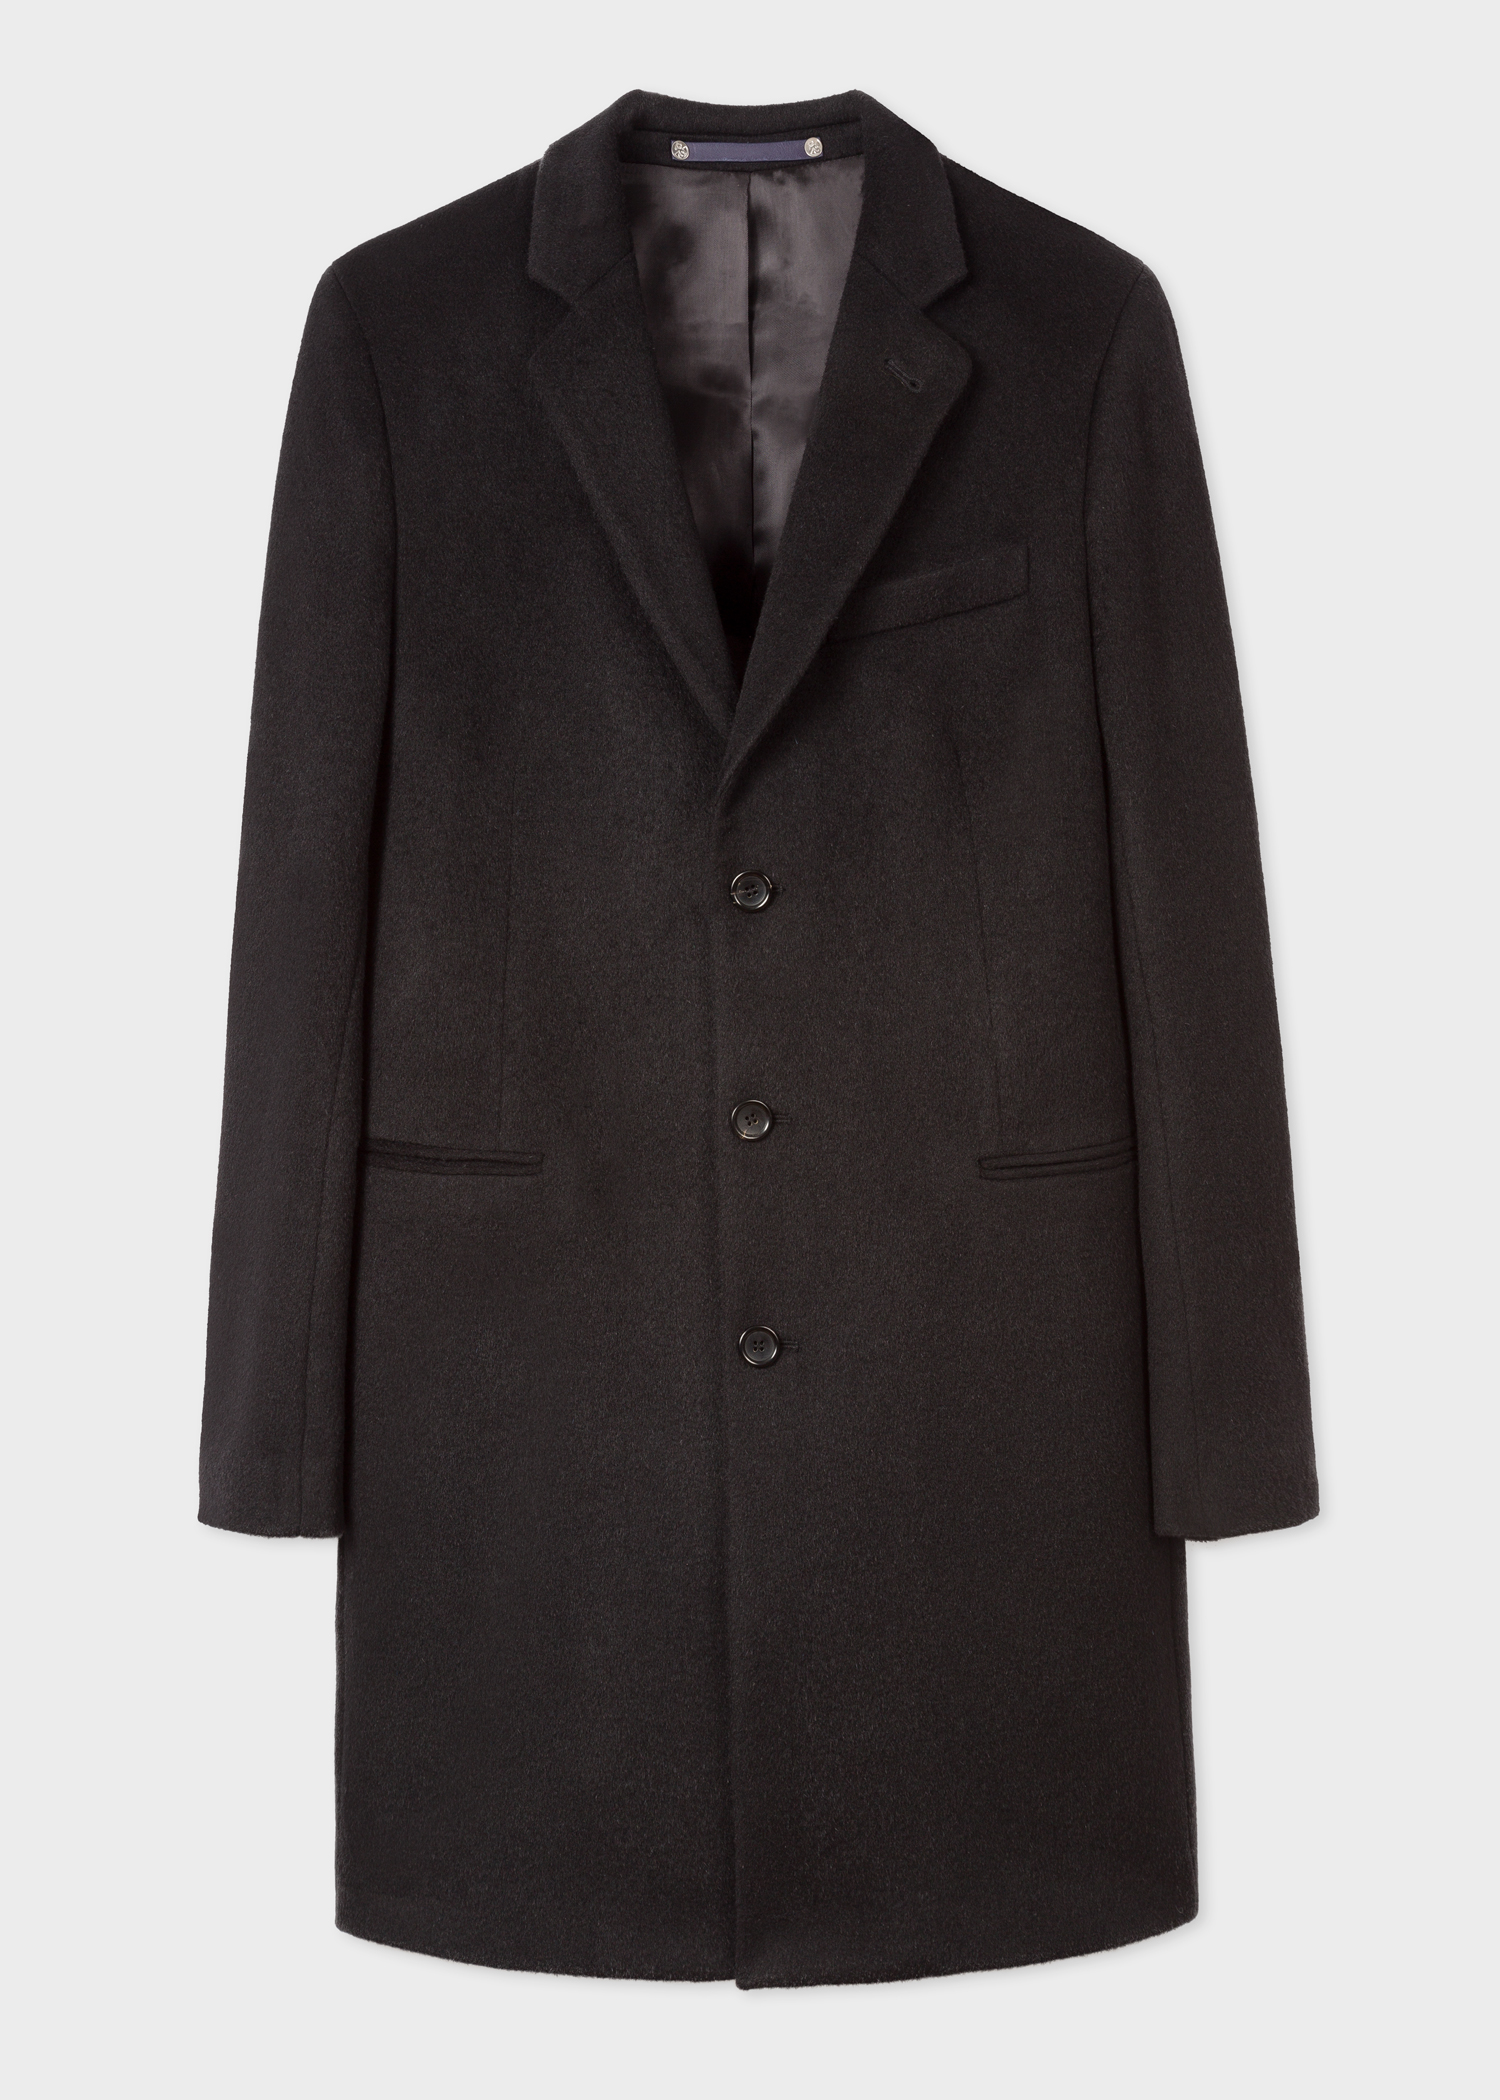 a7faa4b35f0 Men s Black Alpaca-Wool Blend Overcoat - Paul Smith Asia